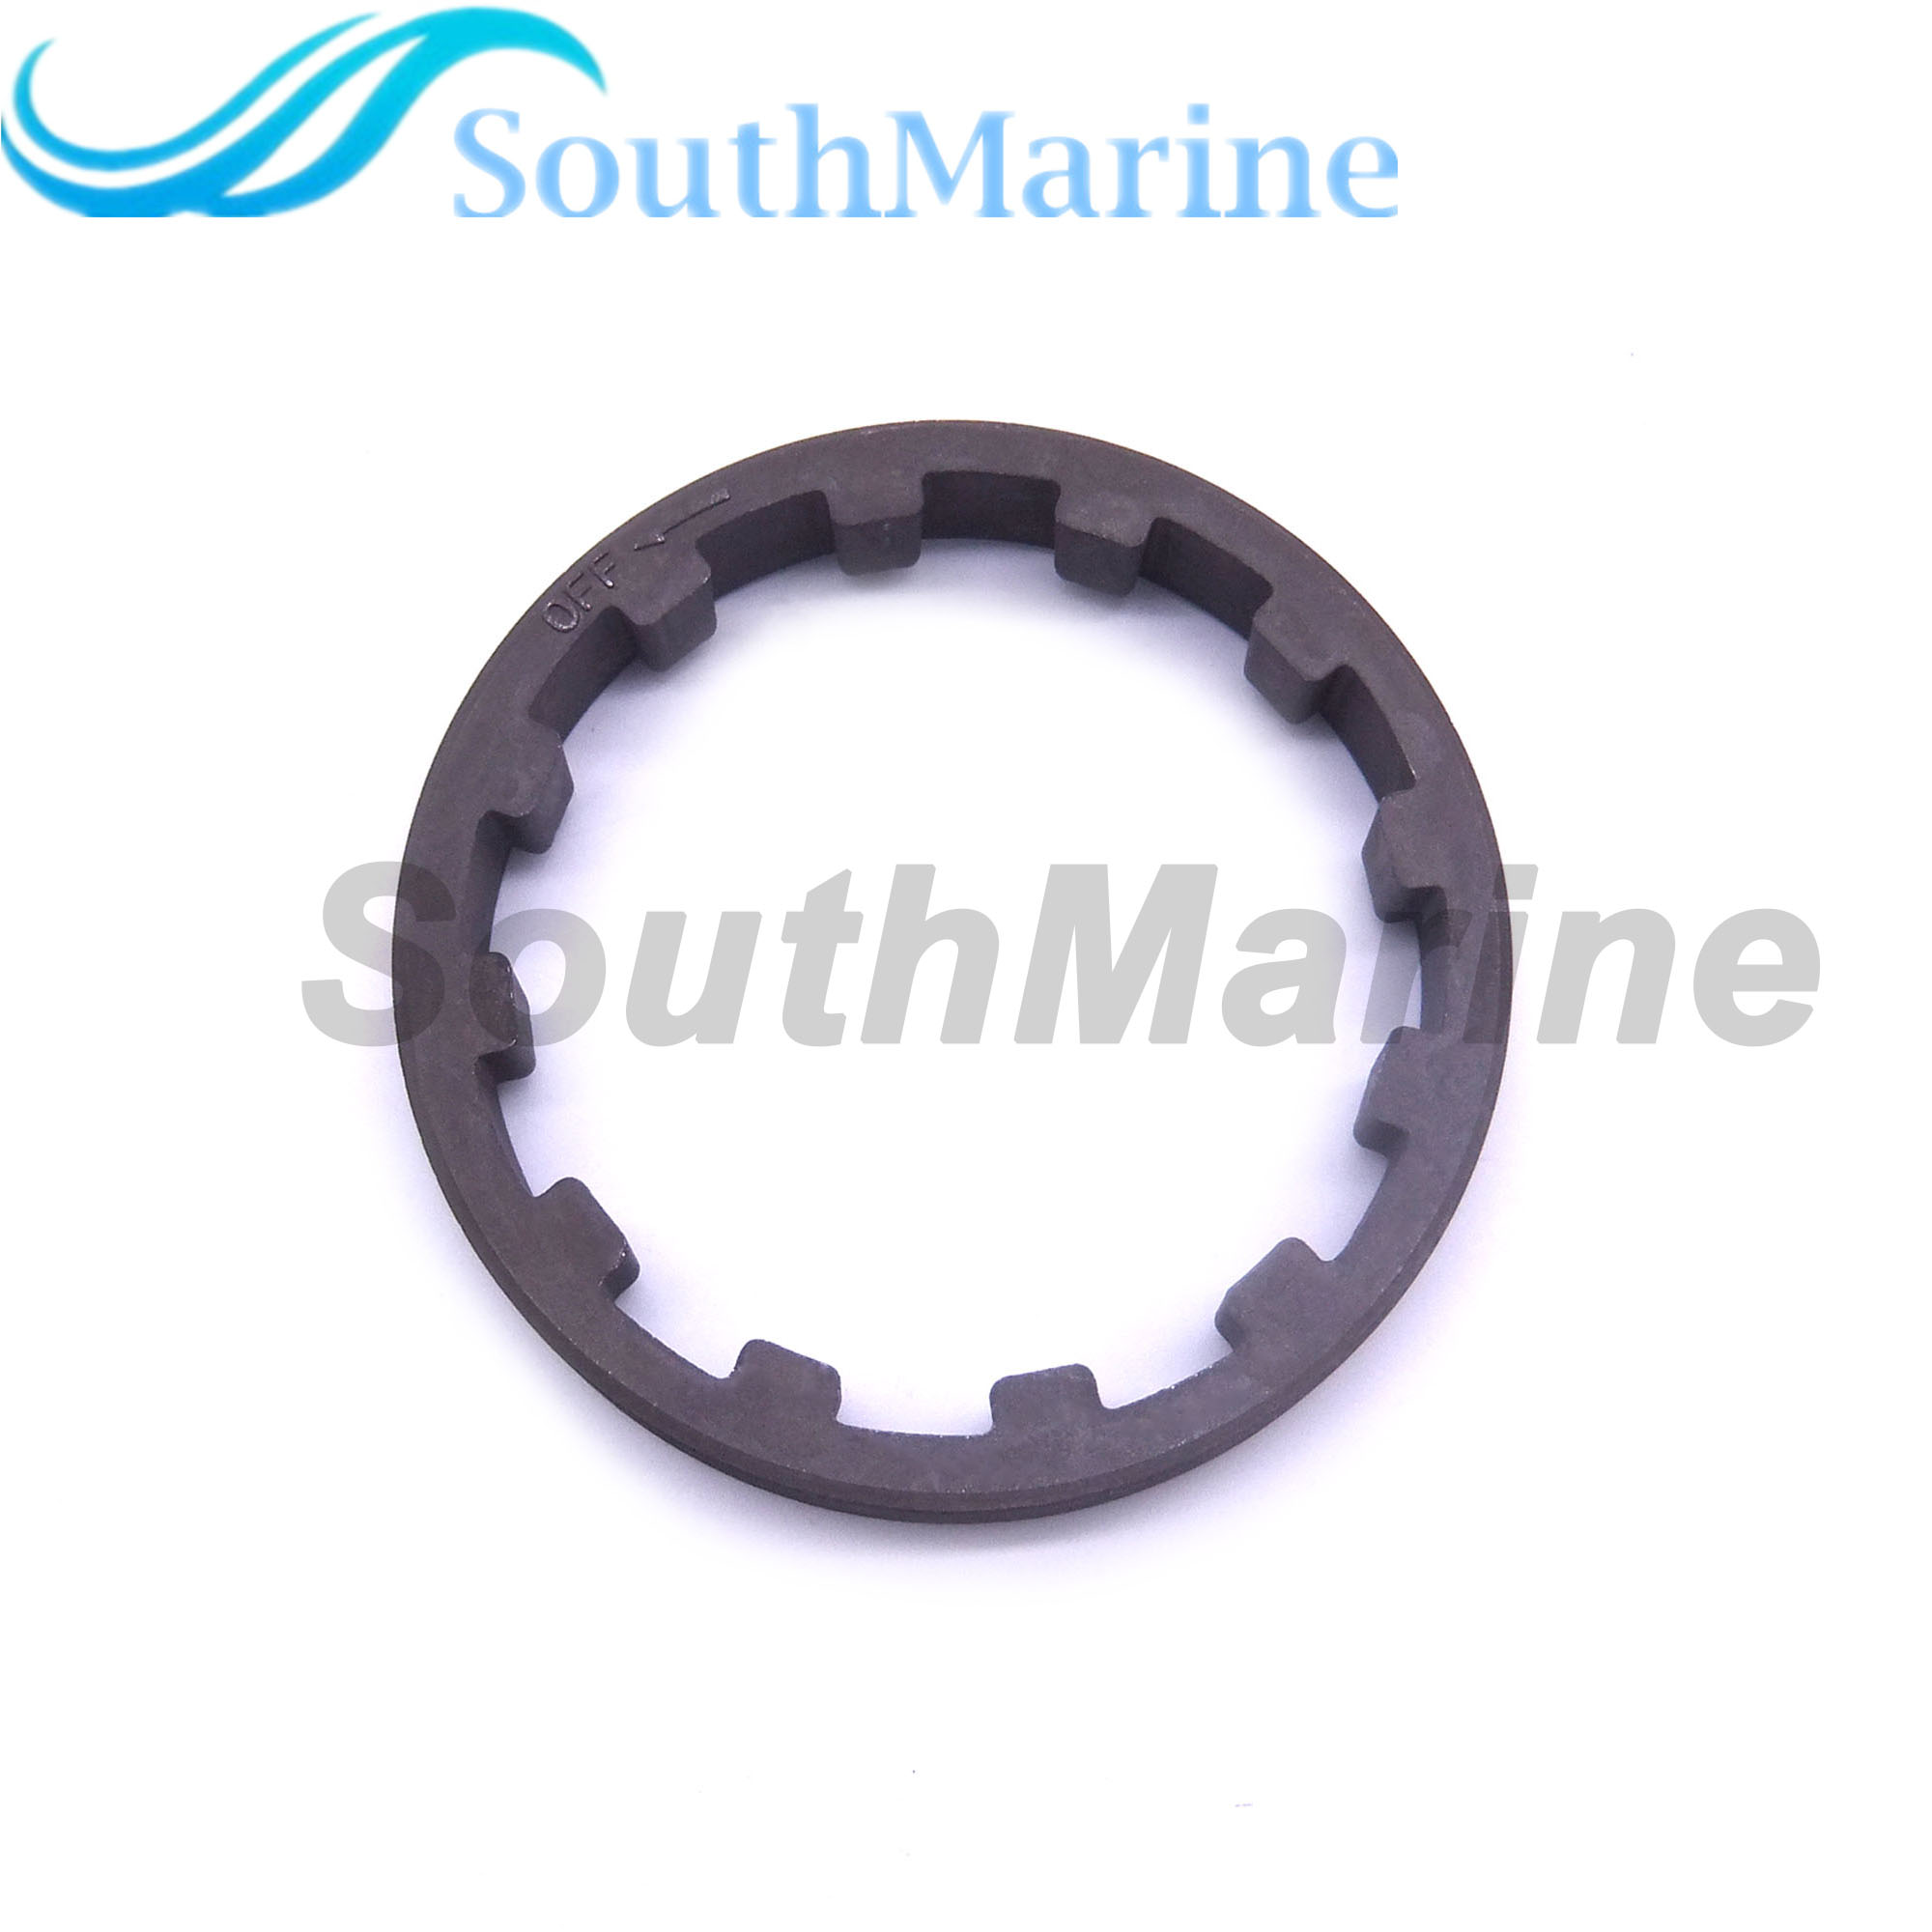 Boat Motor 688-45384-00 688-45384-01 688-45384-02 Lower Unit Spanner Nut For Yamaha Outboard Engine 50HP 60HP 70HP 75HP 80HP 85H